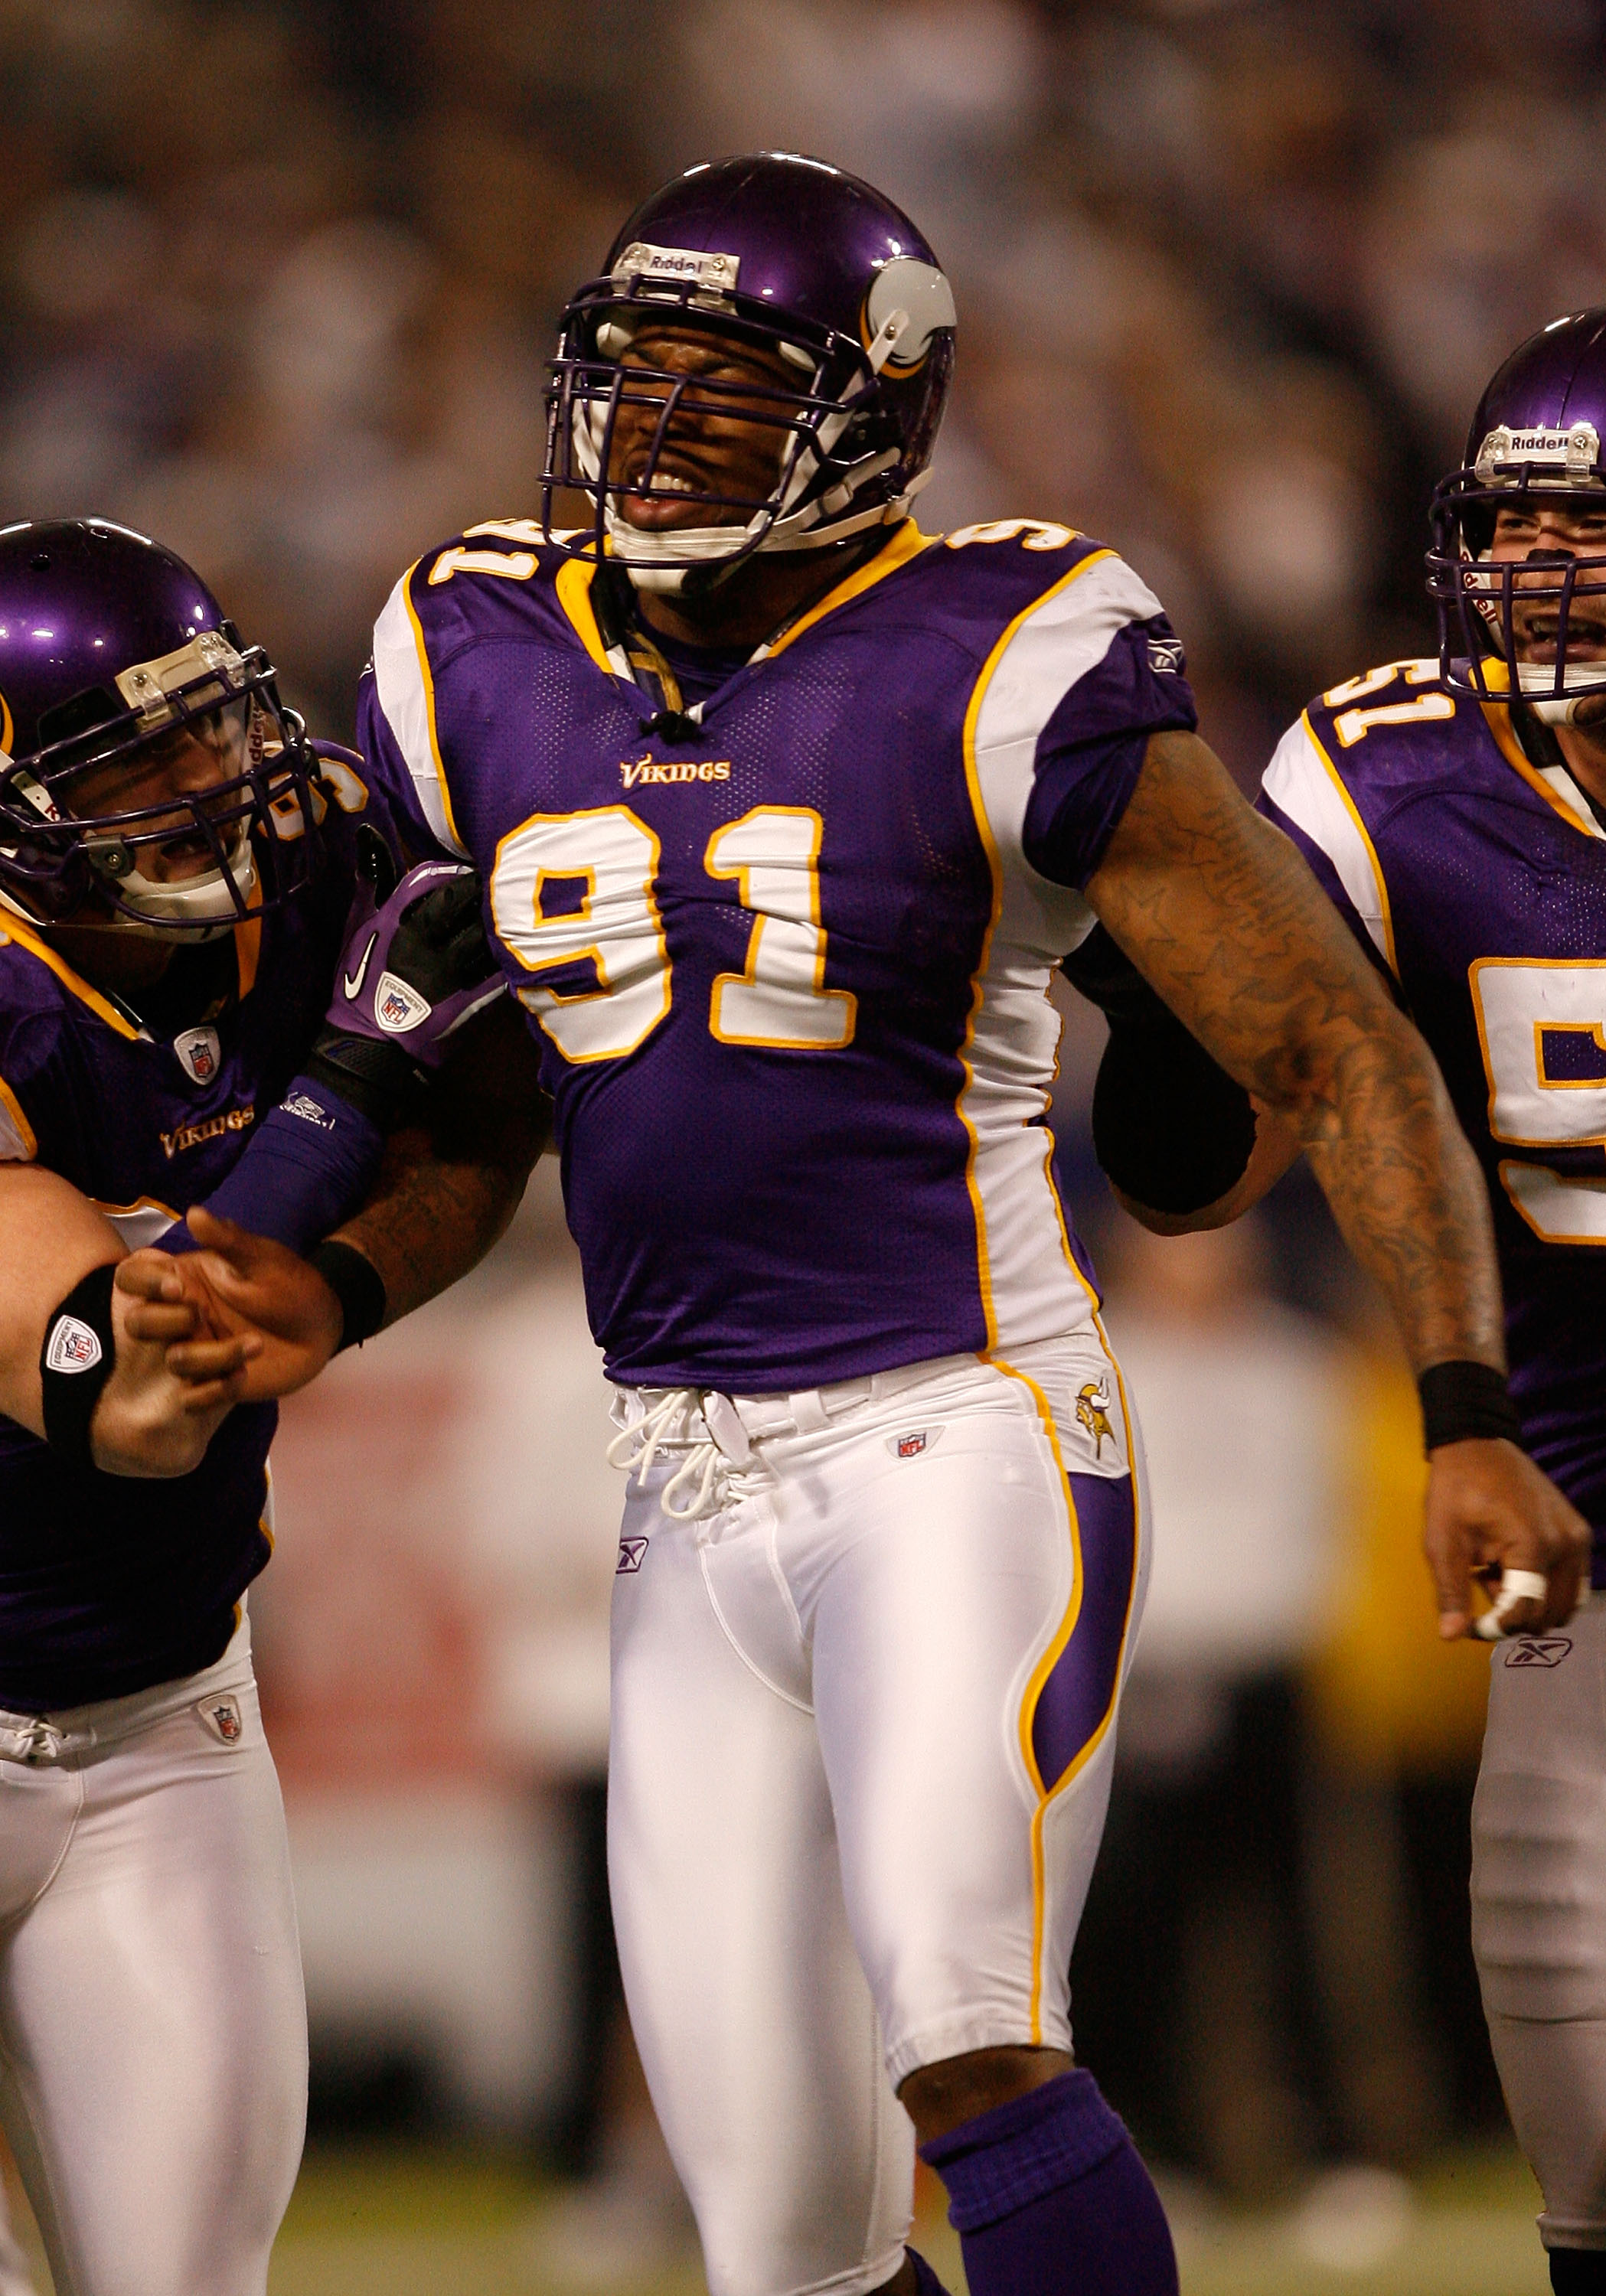 MINNEAPOLIS - JANUARY 17:  Ray Edwards #91 of the Minnesota Vikings celebrates a sack that led to a fumble in the first quarter of the game against the Dallas Cowboys during the NFC Divisional Playoff Game at Hubert H. Humphrey Metrodome on January 17, 20